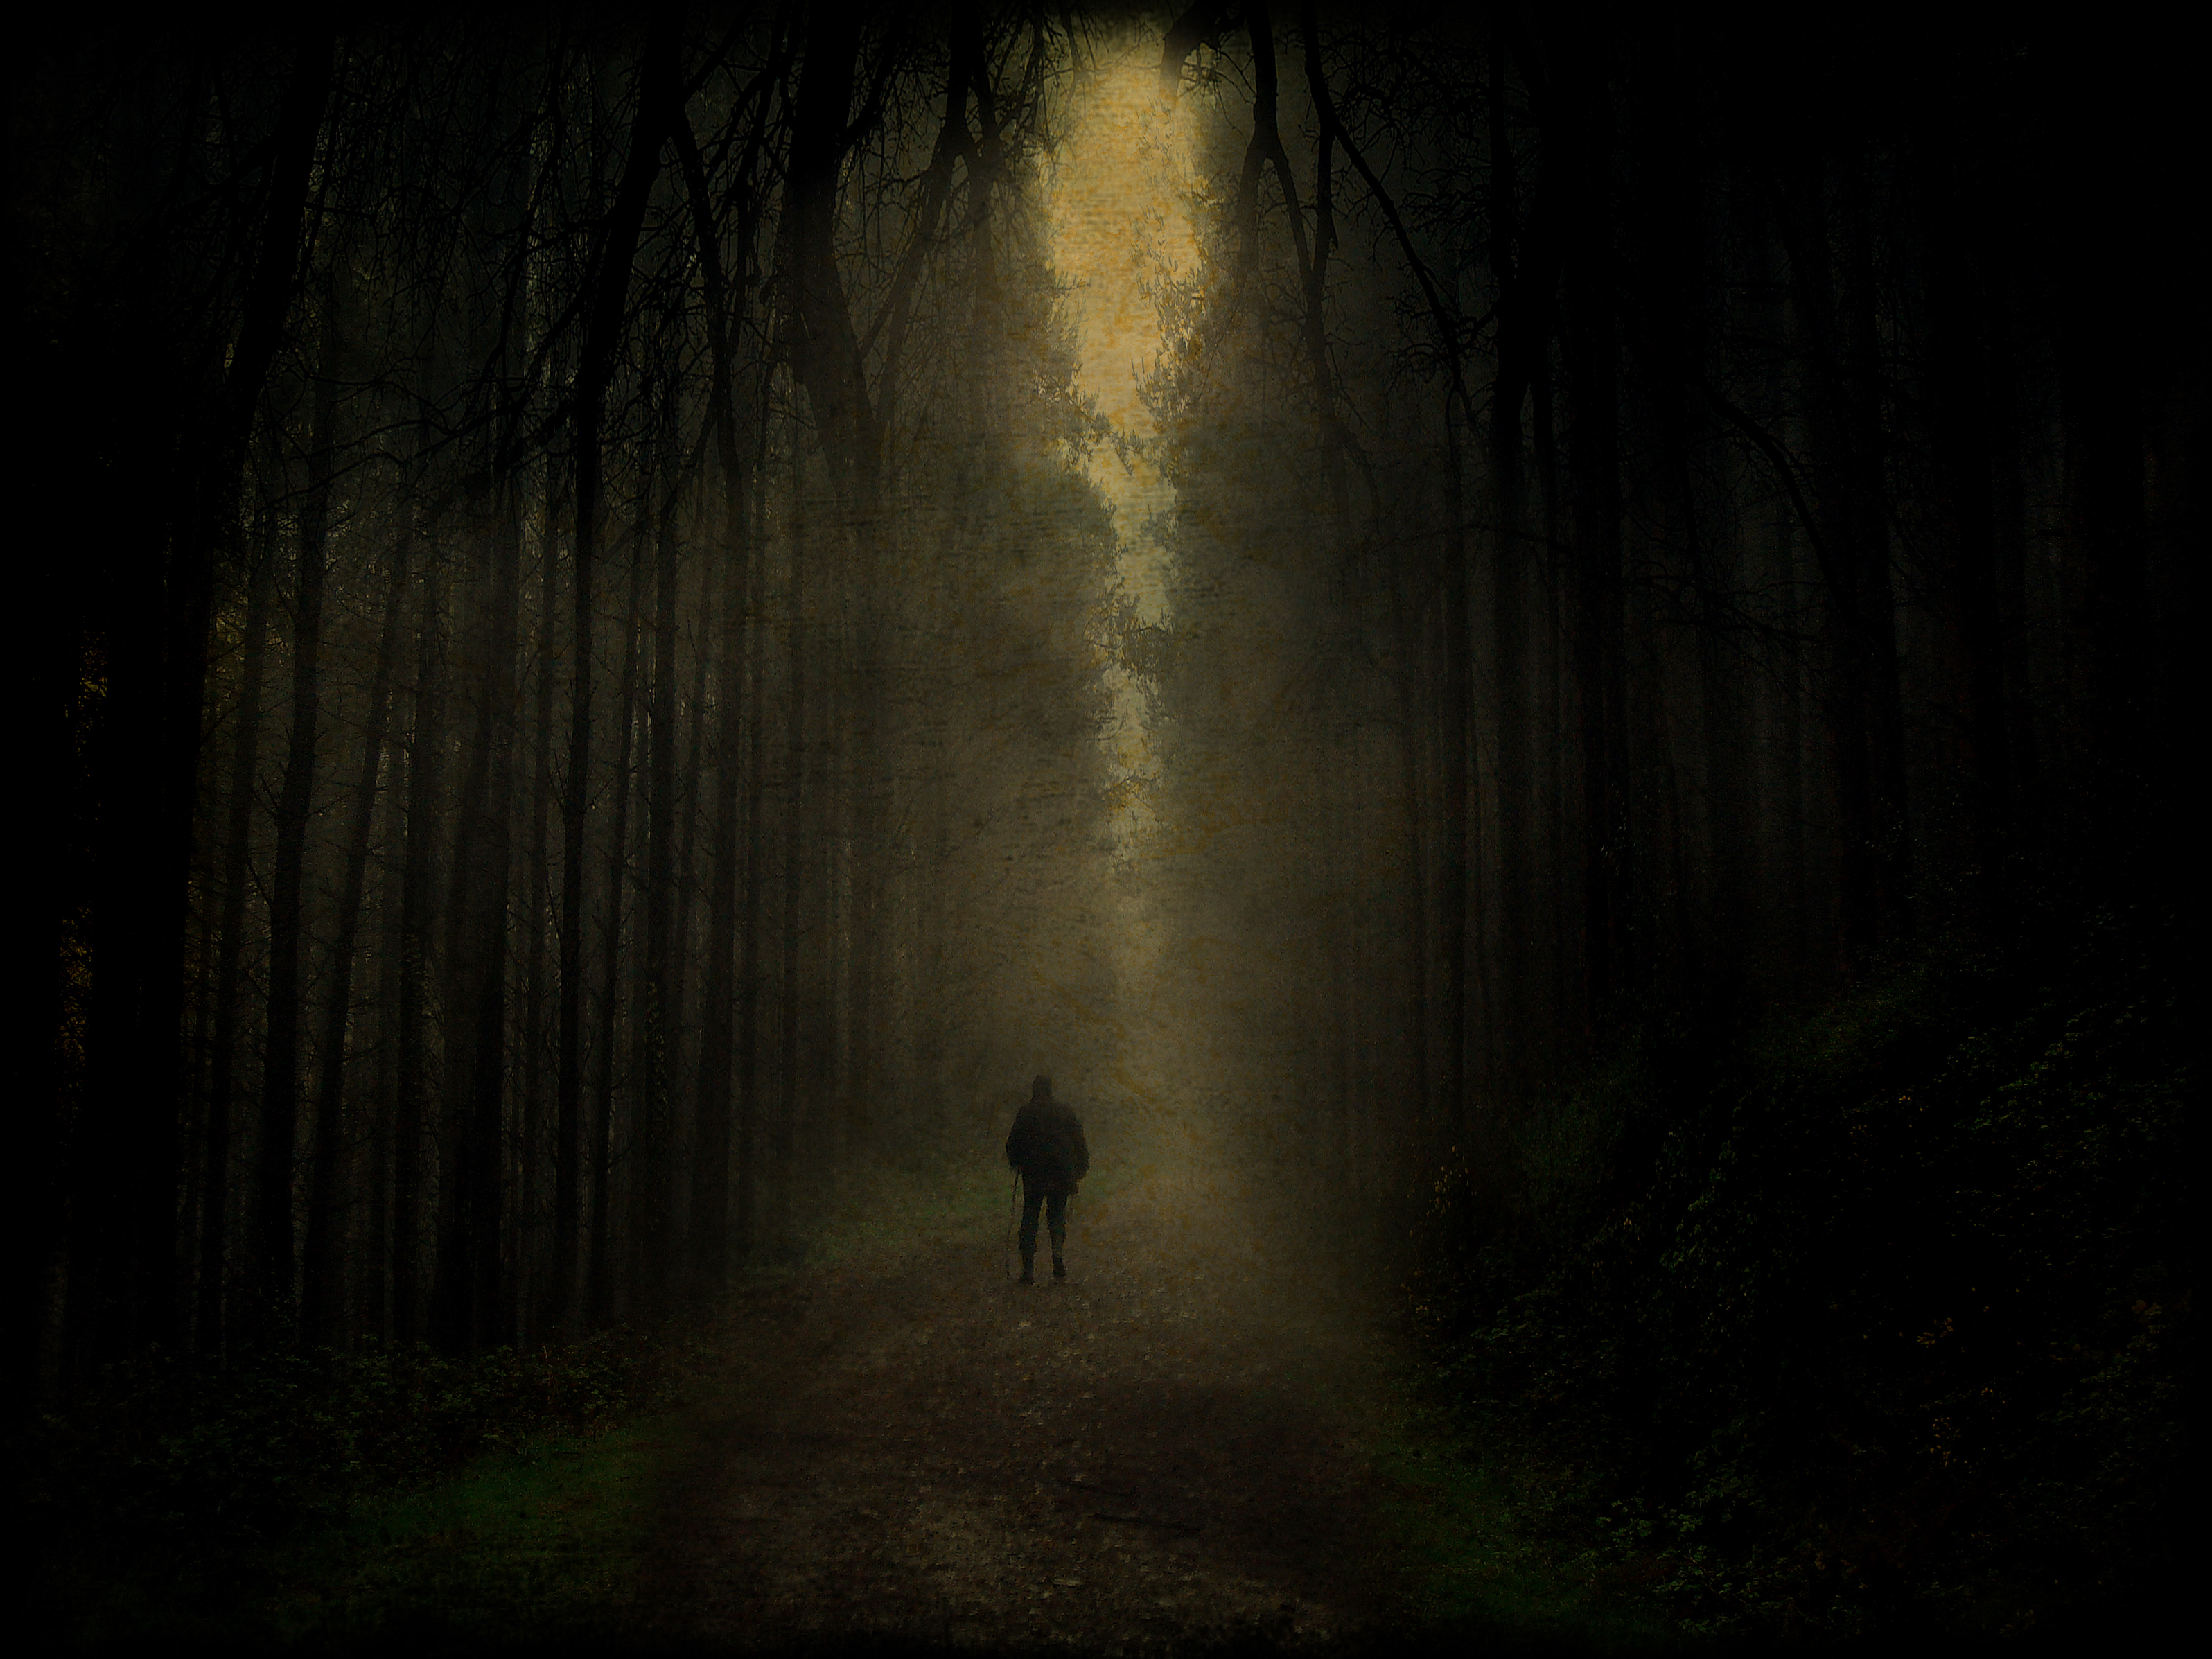 http://soulpossession.files.wordpress.com/2011/11/dark_forest_walk_by_tadbeer.jpg